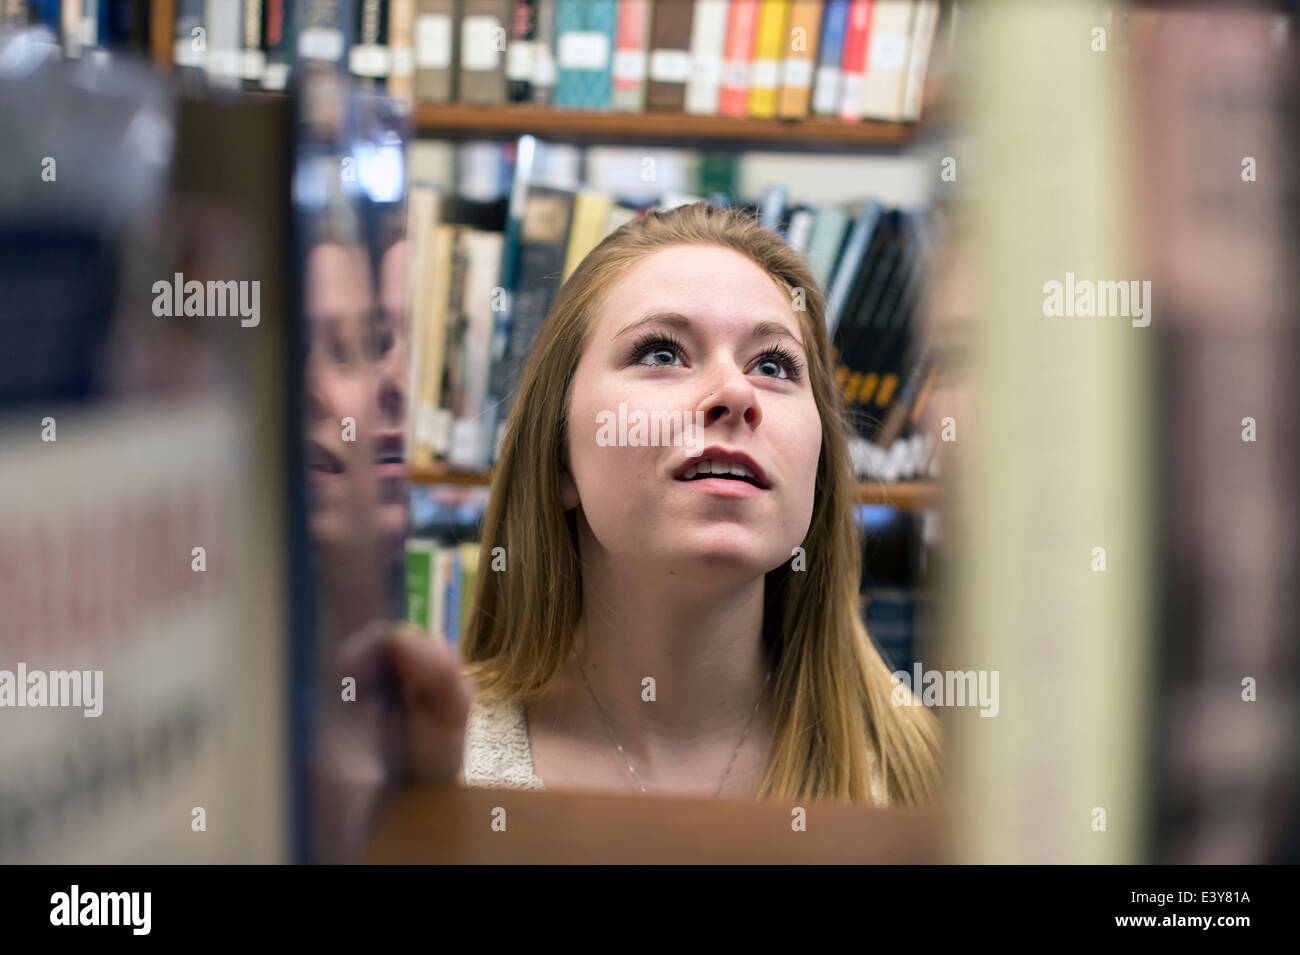 Young woman choosing book in library - Stock Image